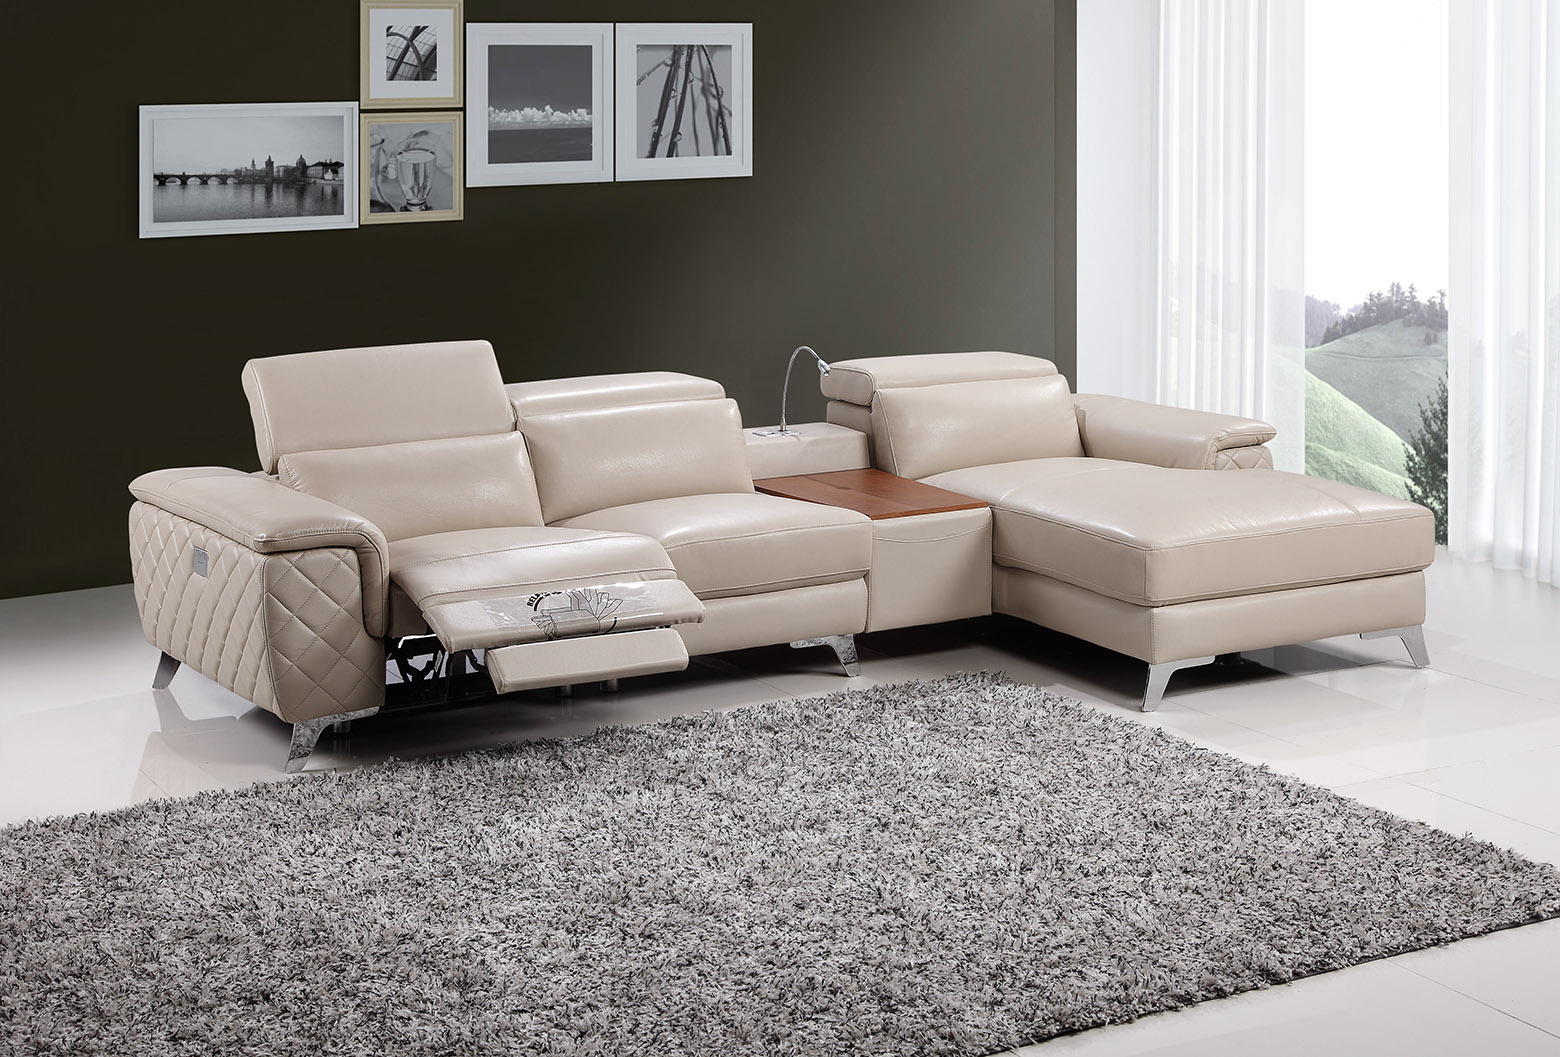 Fay 9159B Chaise lounge with Electronic Recliner | Fortune ...